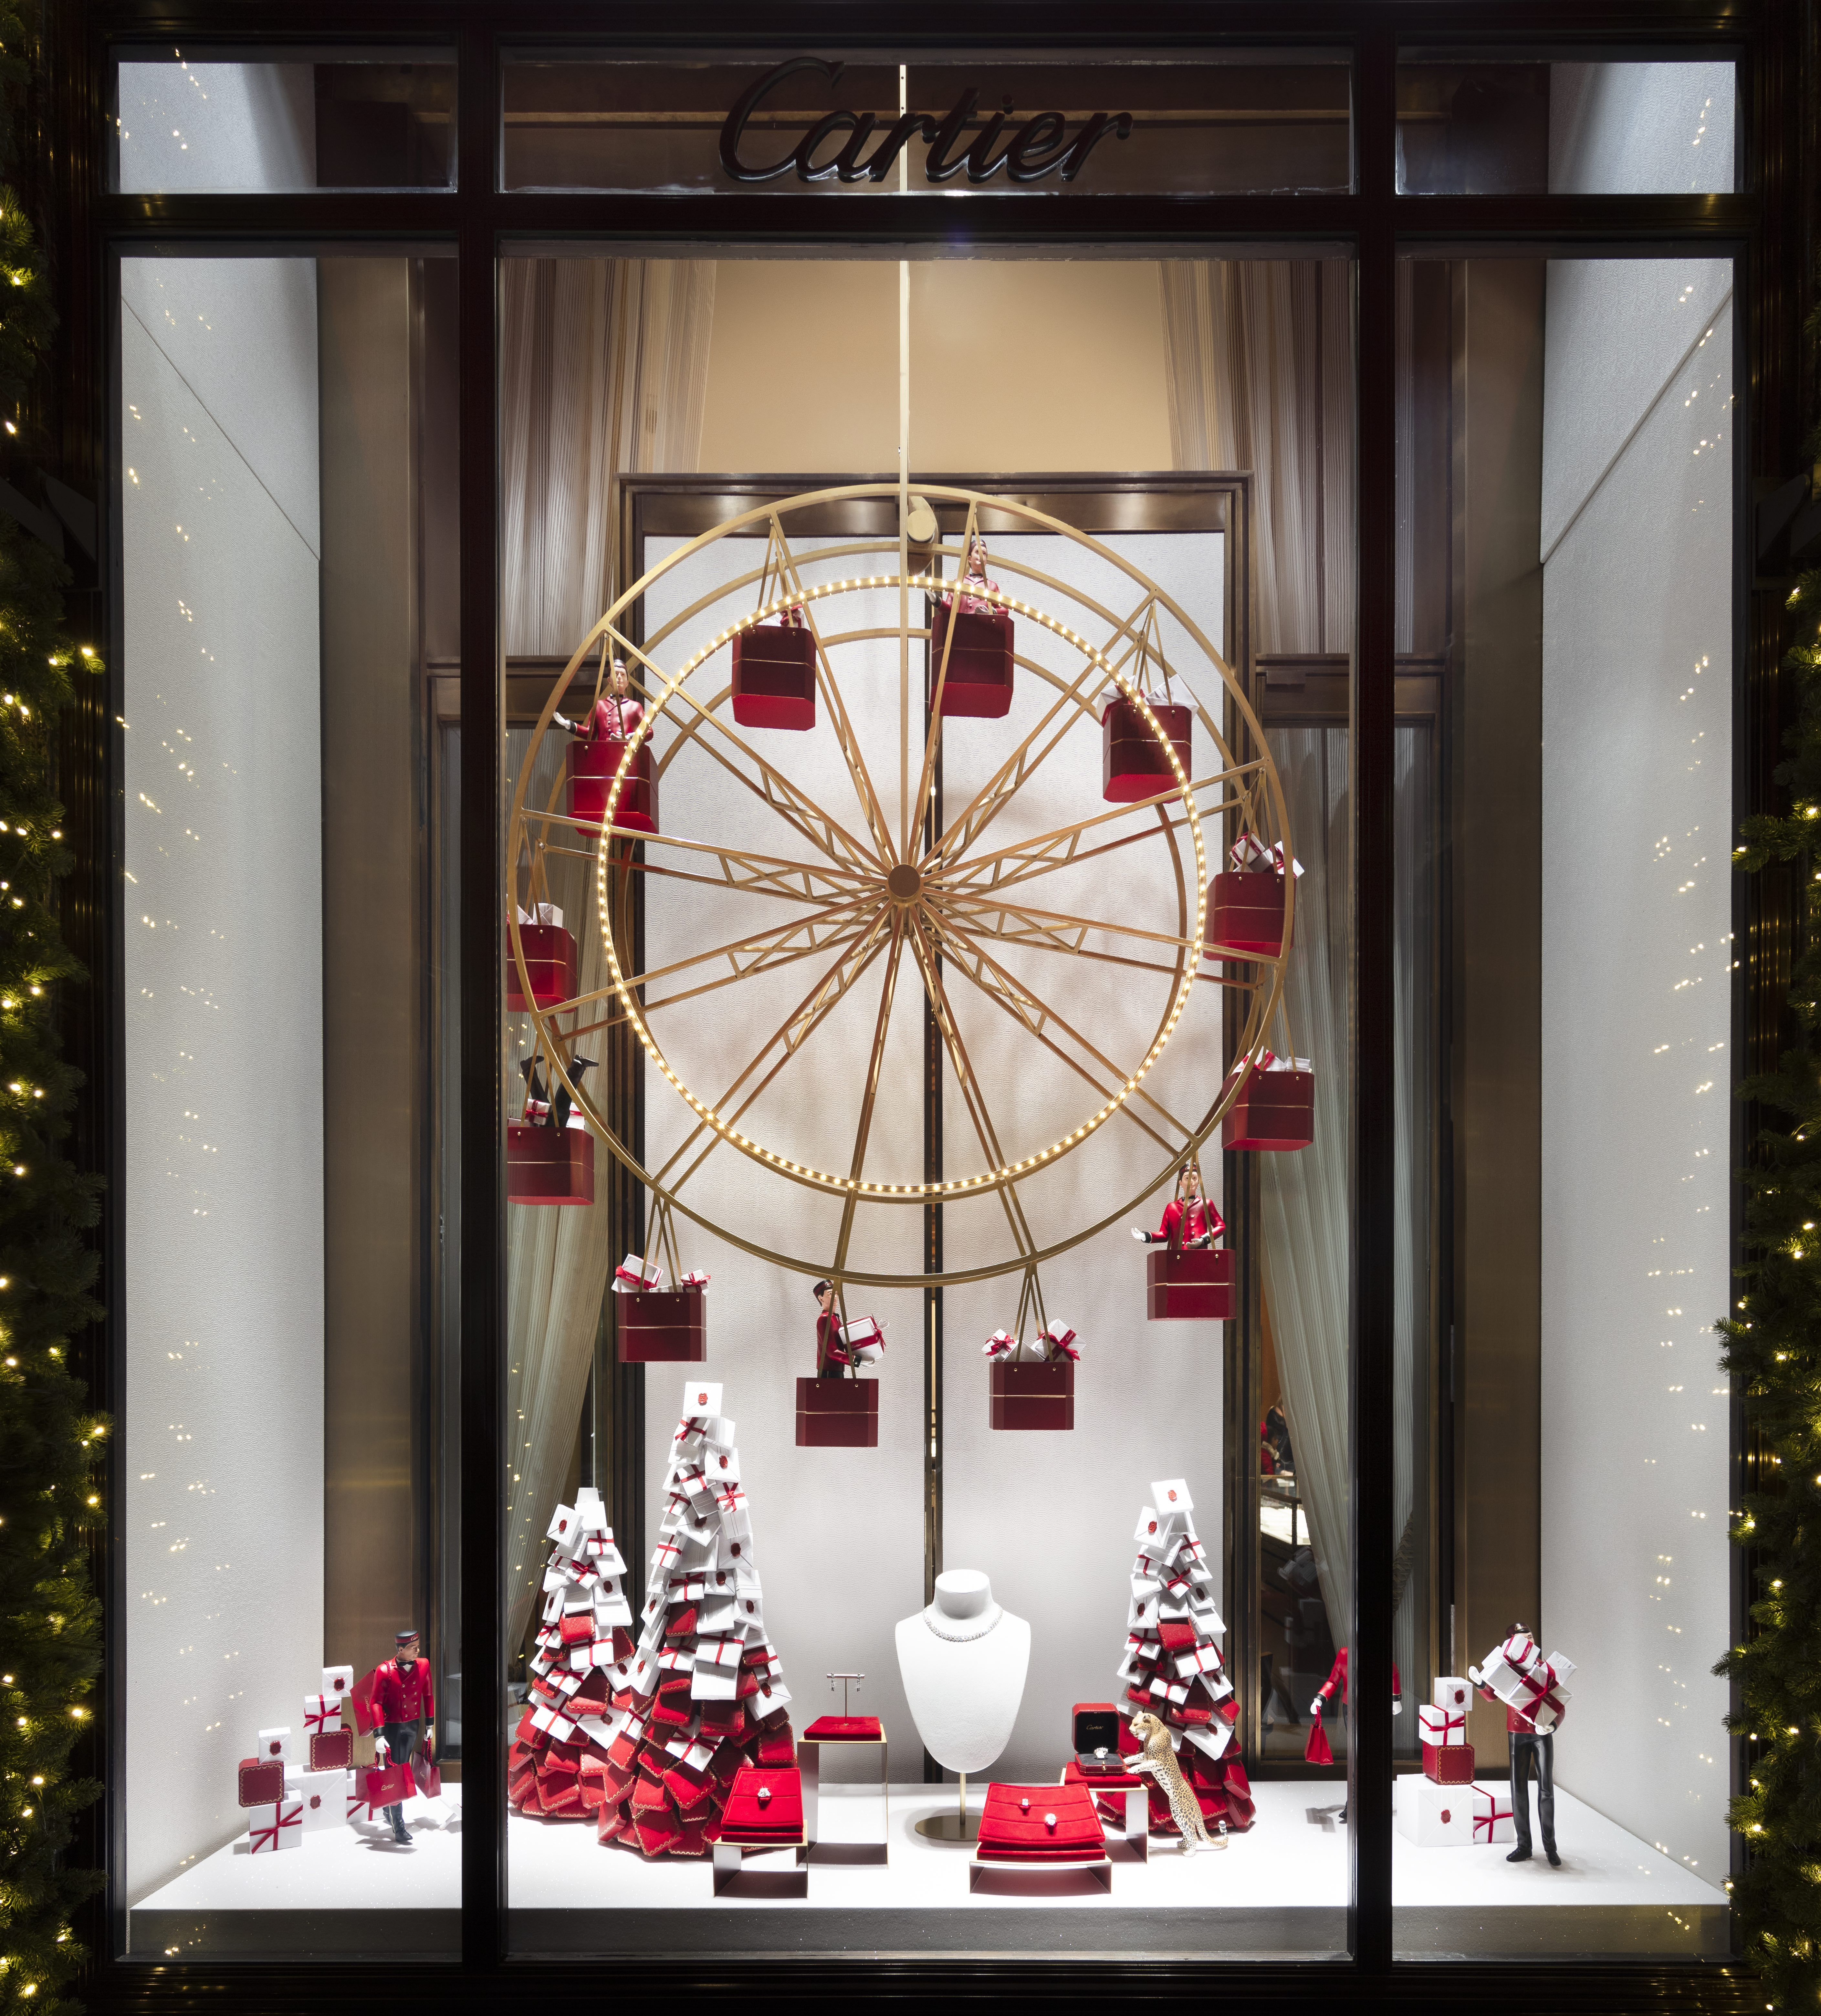 d8e0885cfce21 The Best Christmas Windows in NYC - Holiday Window Displays to Visit in New  York 2018